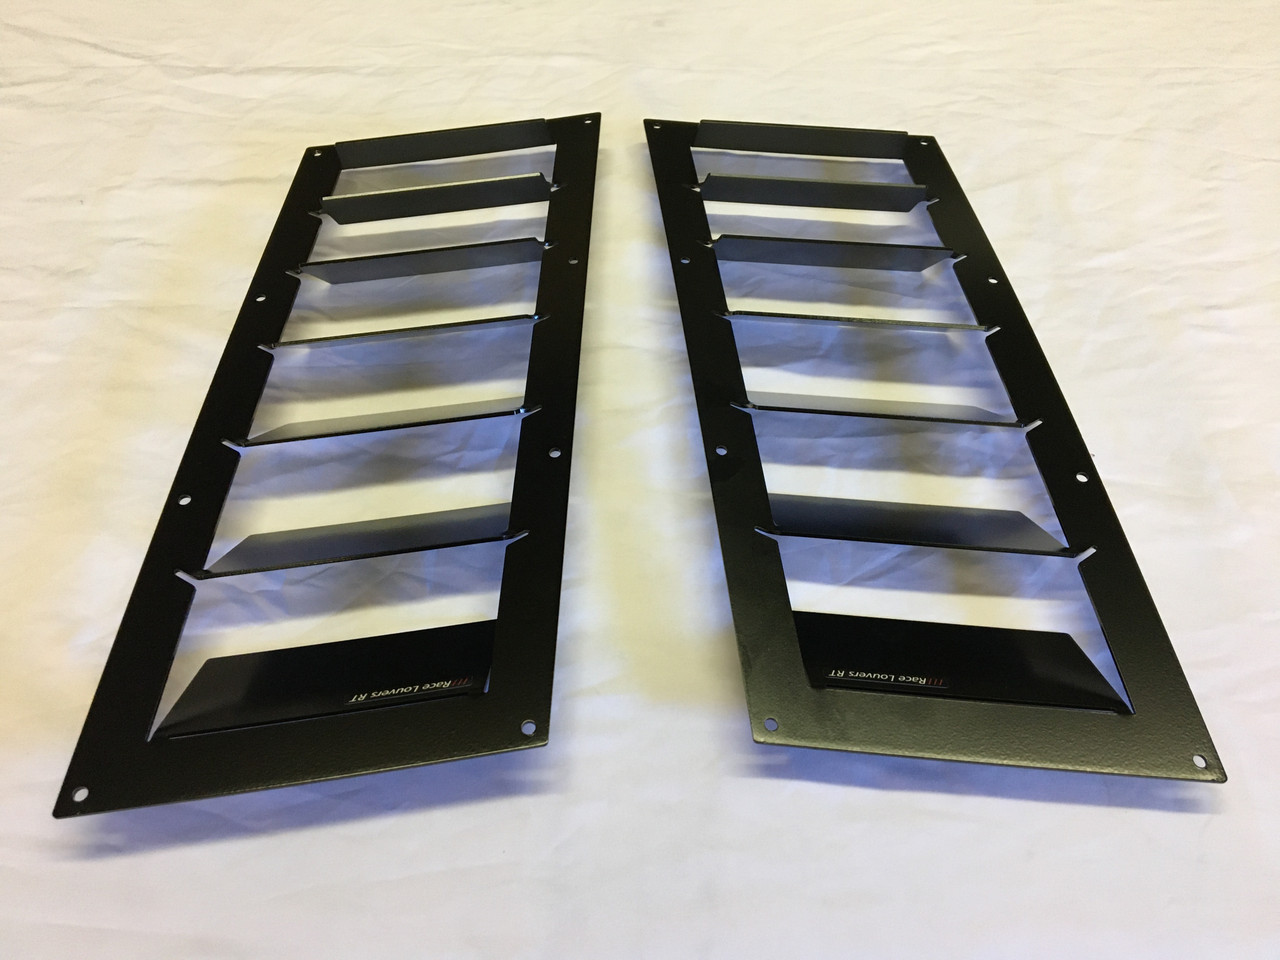 Race Louver C6 RT trim straight angular pair car hood extractor is designed for street, high performance driving and track duty.